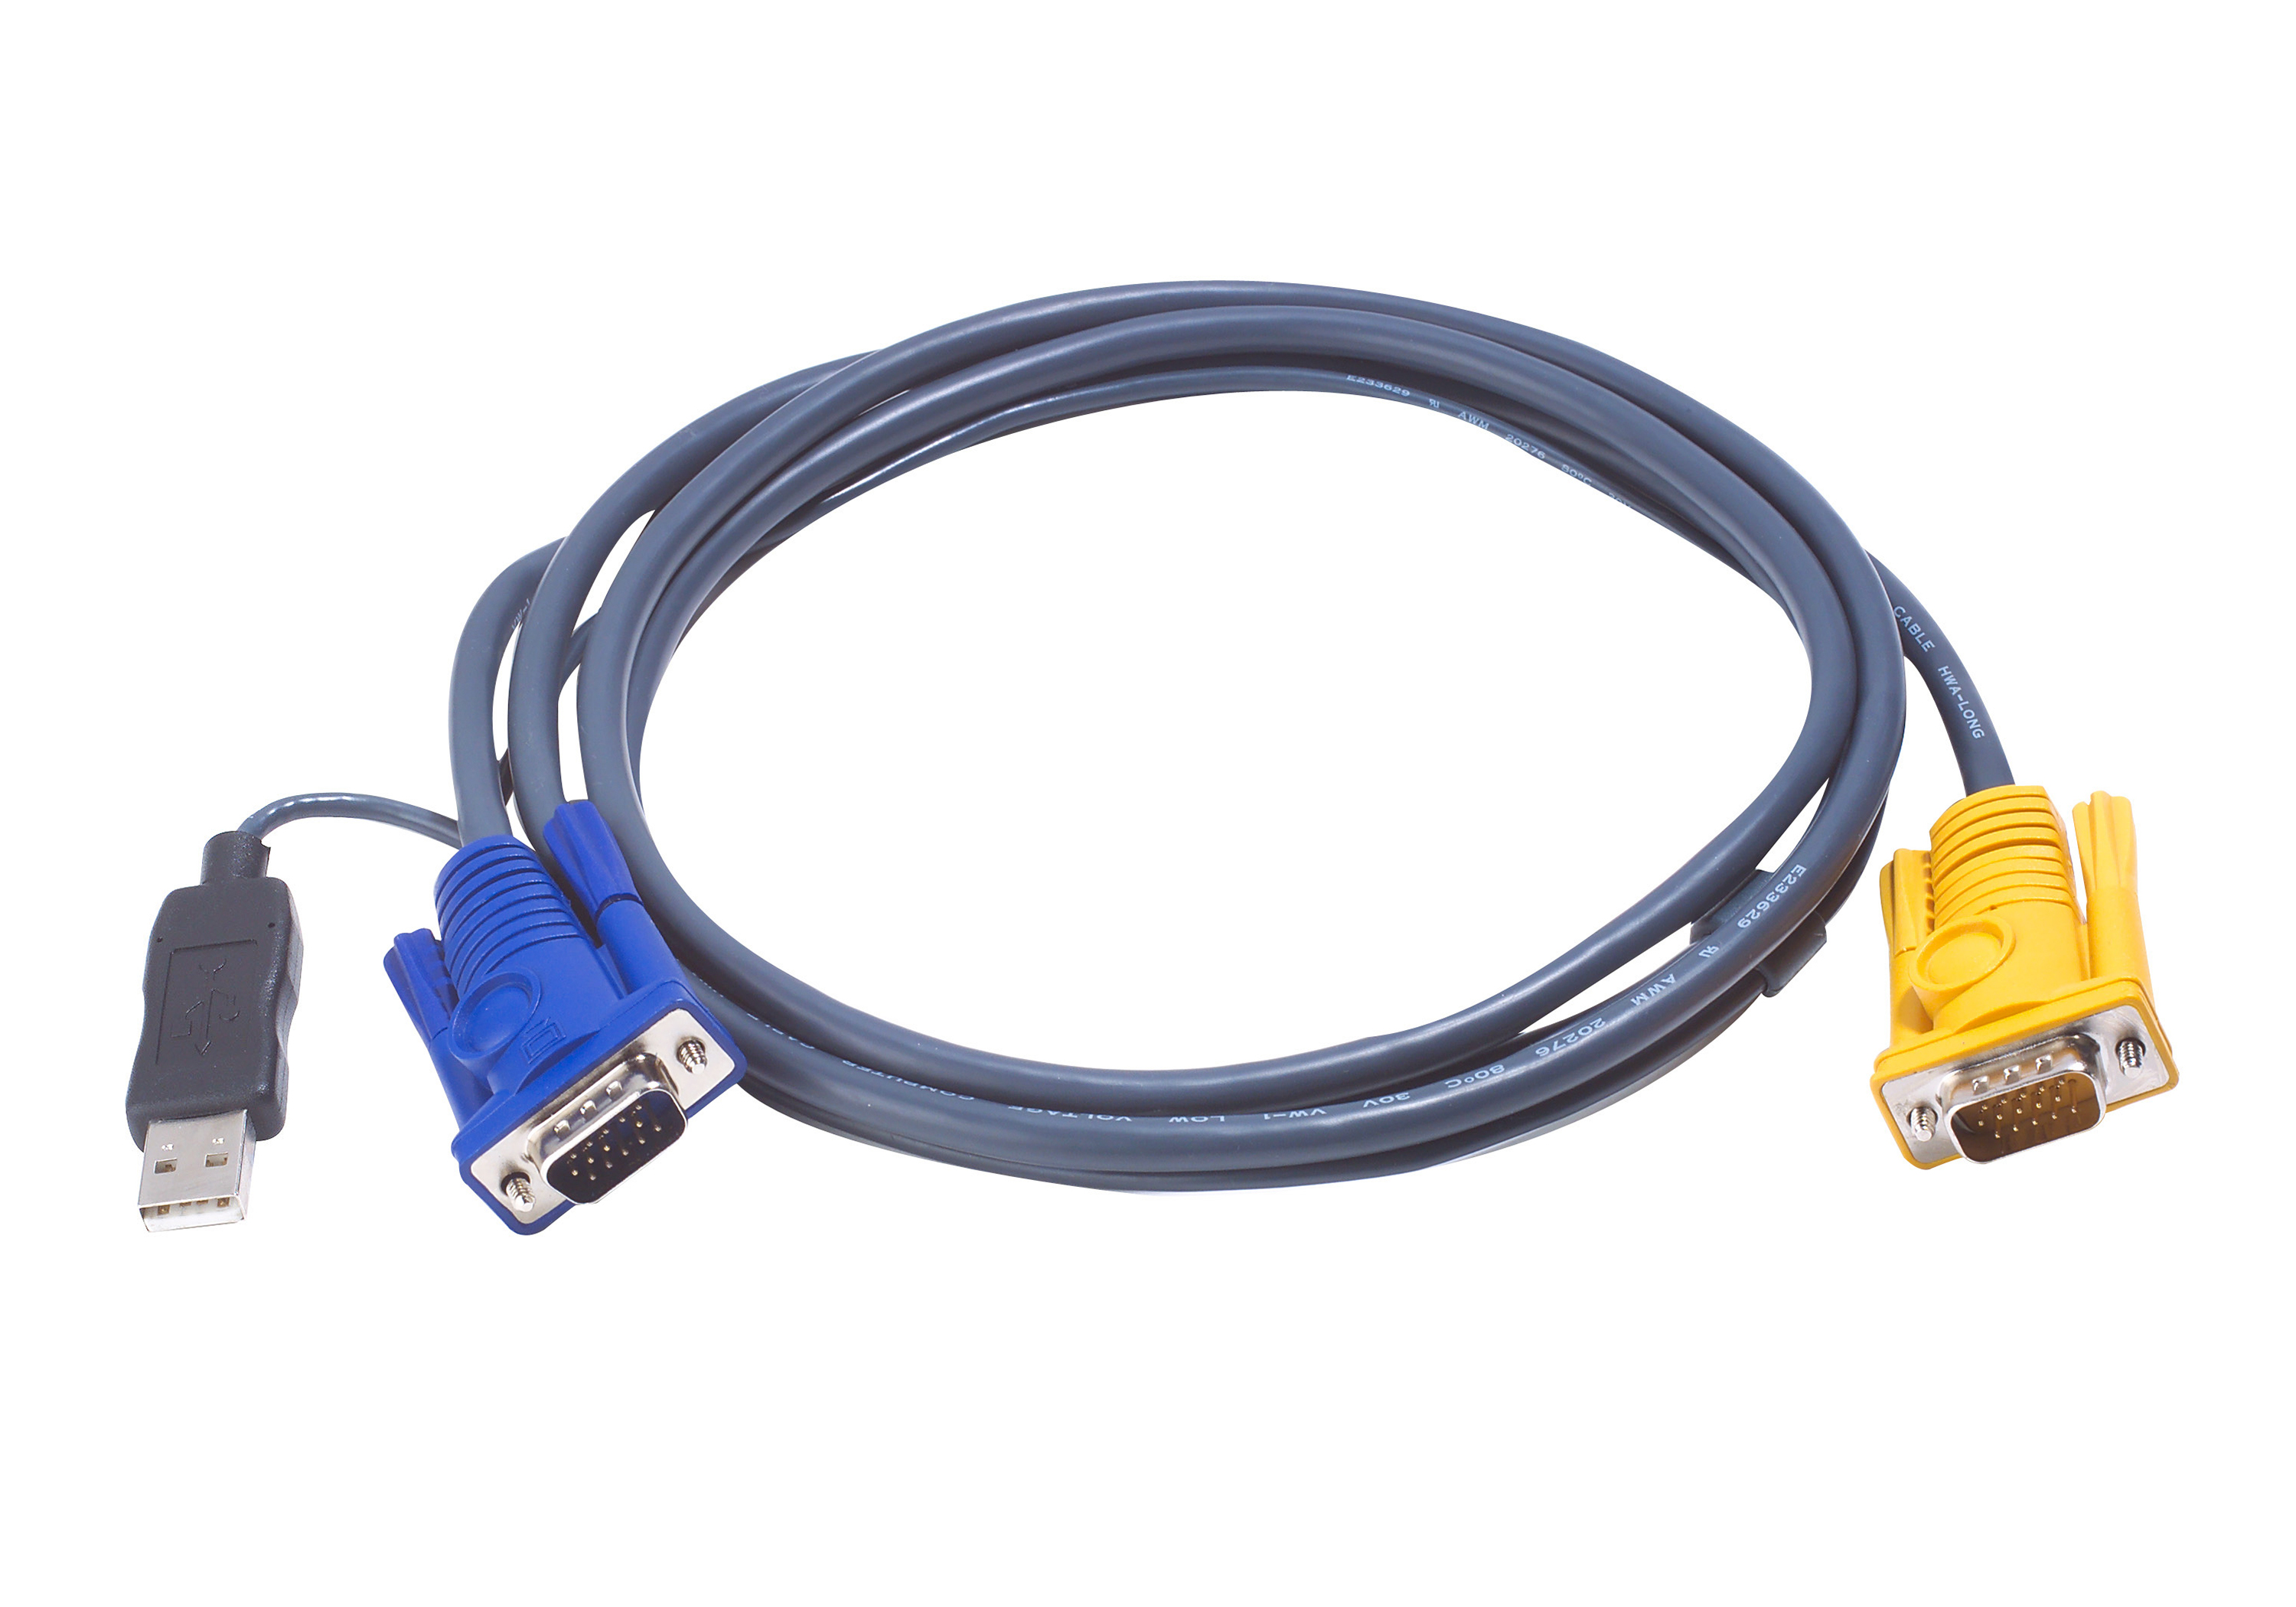 3M USB KVM Cable with 3 in 1 SPHD and built-in PS/2 to USB converter-2